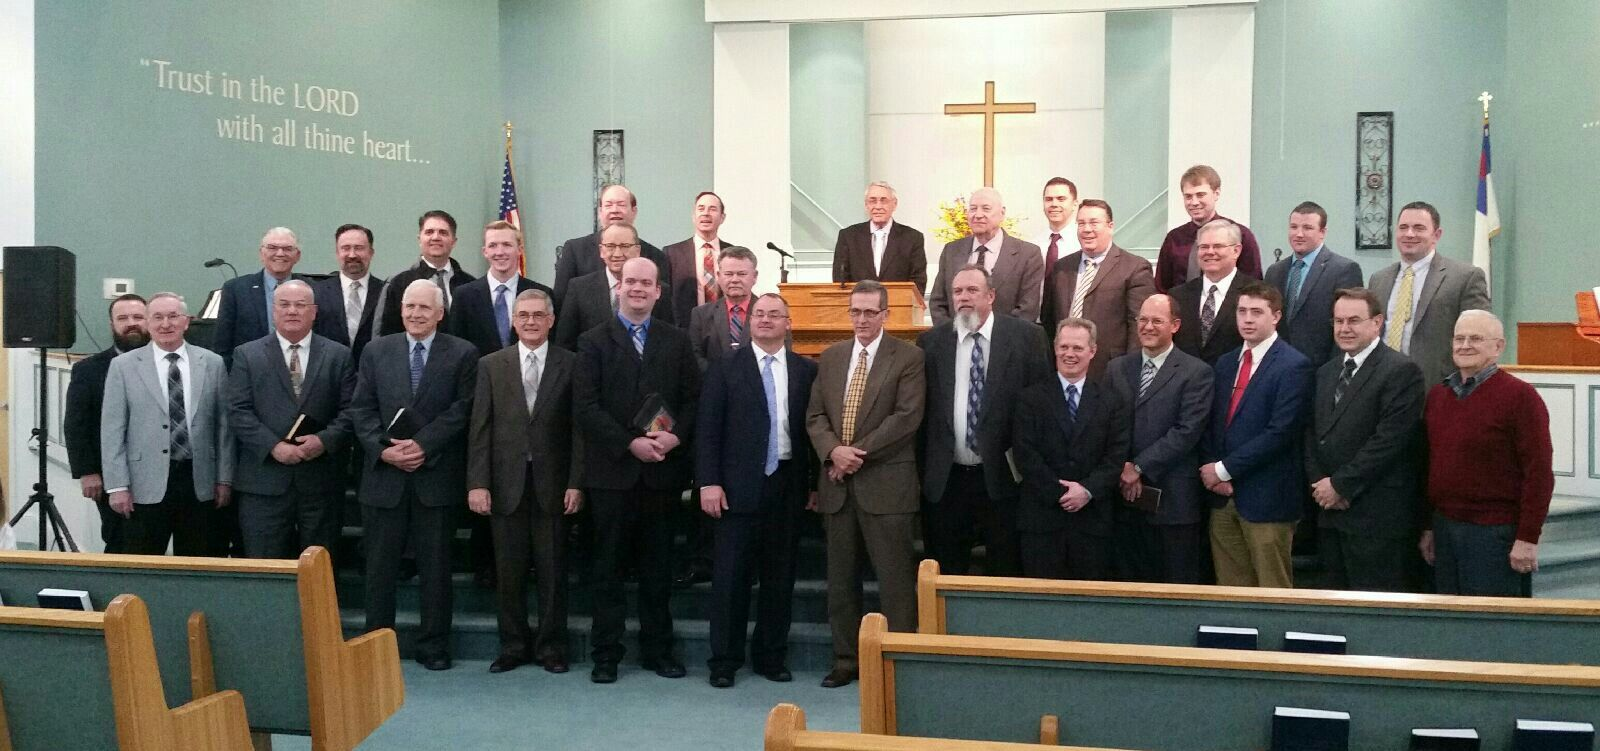 We had a great time at a pastors meeting.